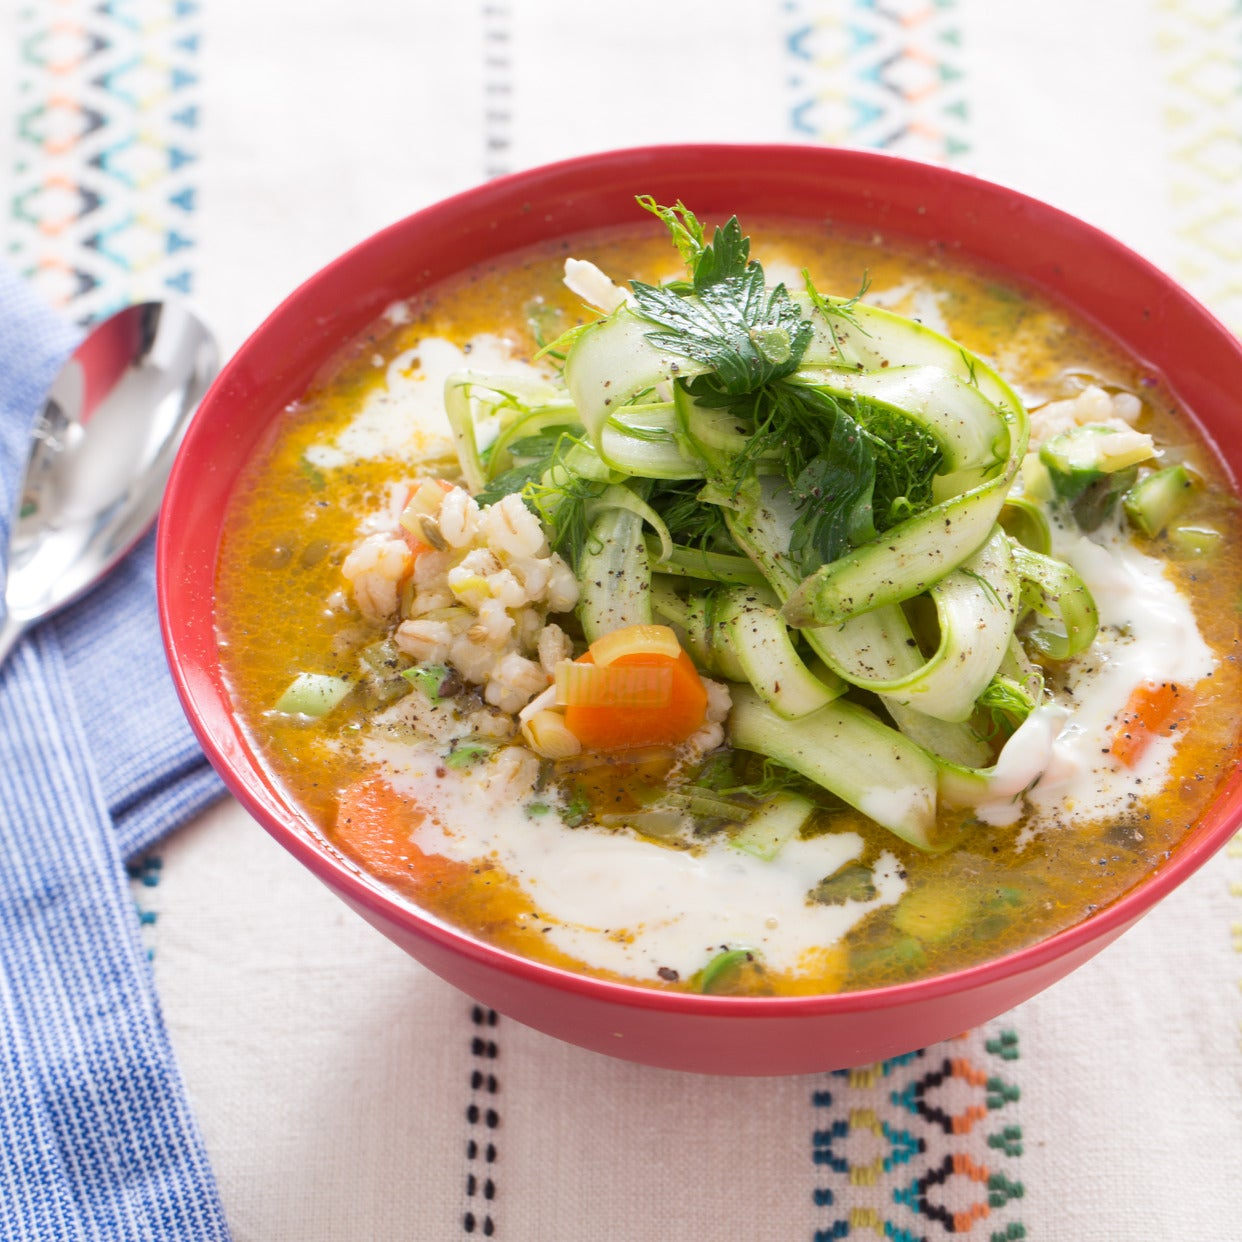 Spring Barley Soup with Green Garlic & Baby Fennel-Asparagus Salad